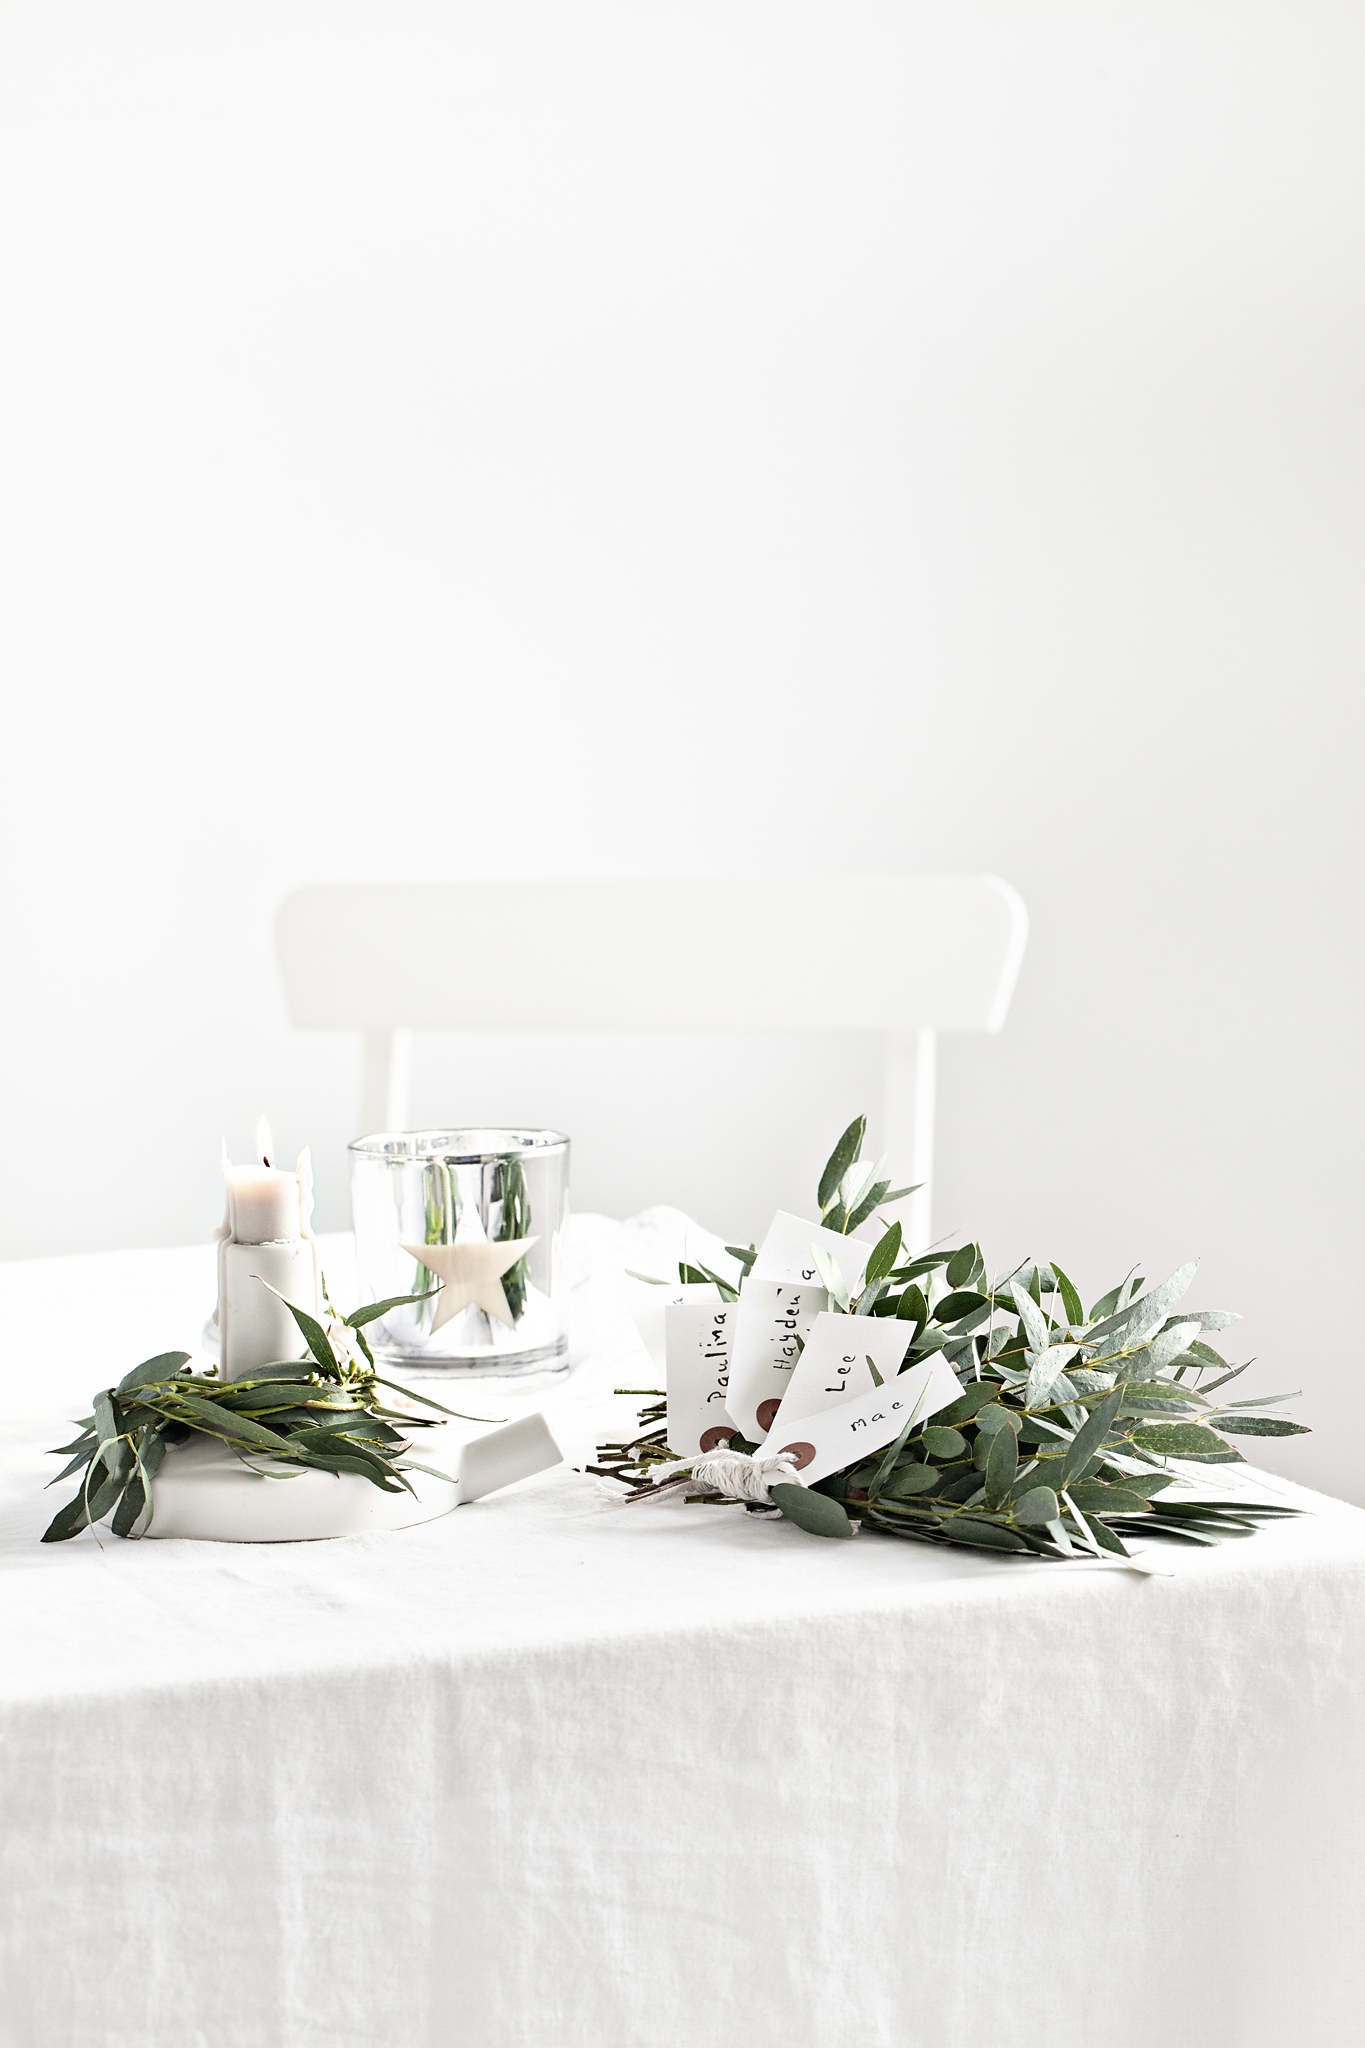 Star 'Holly Berry' scented candle from   Lovely Pair   | White   Serax   ceramic candle holder from   istome